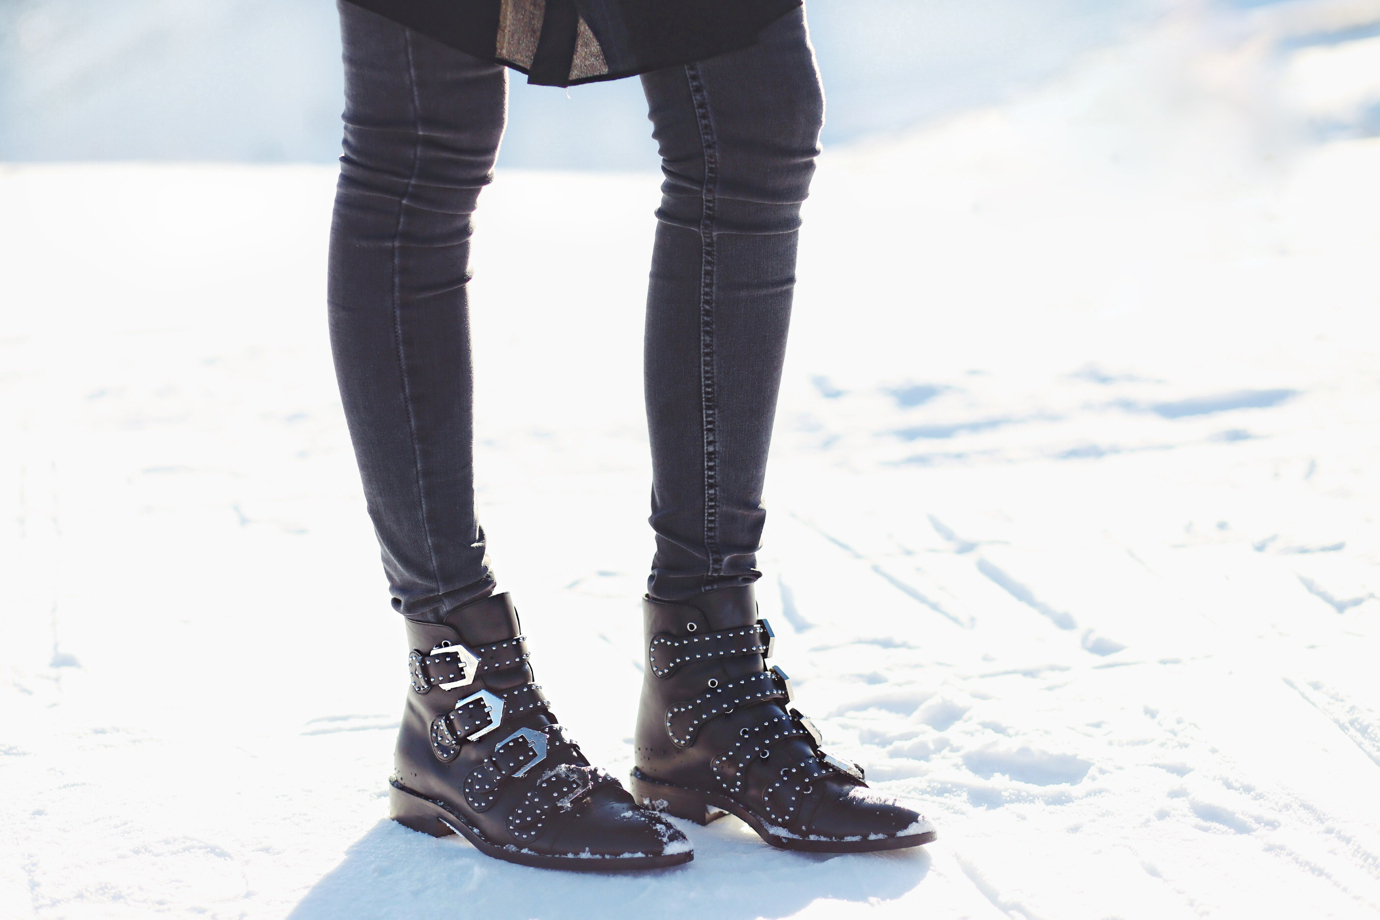 givenchy_boots_woolrich_parka_gucci_dionysus_ohhcouture6